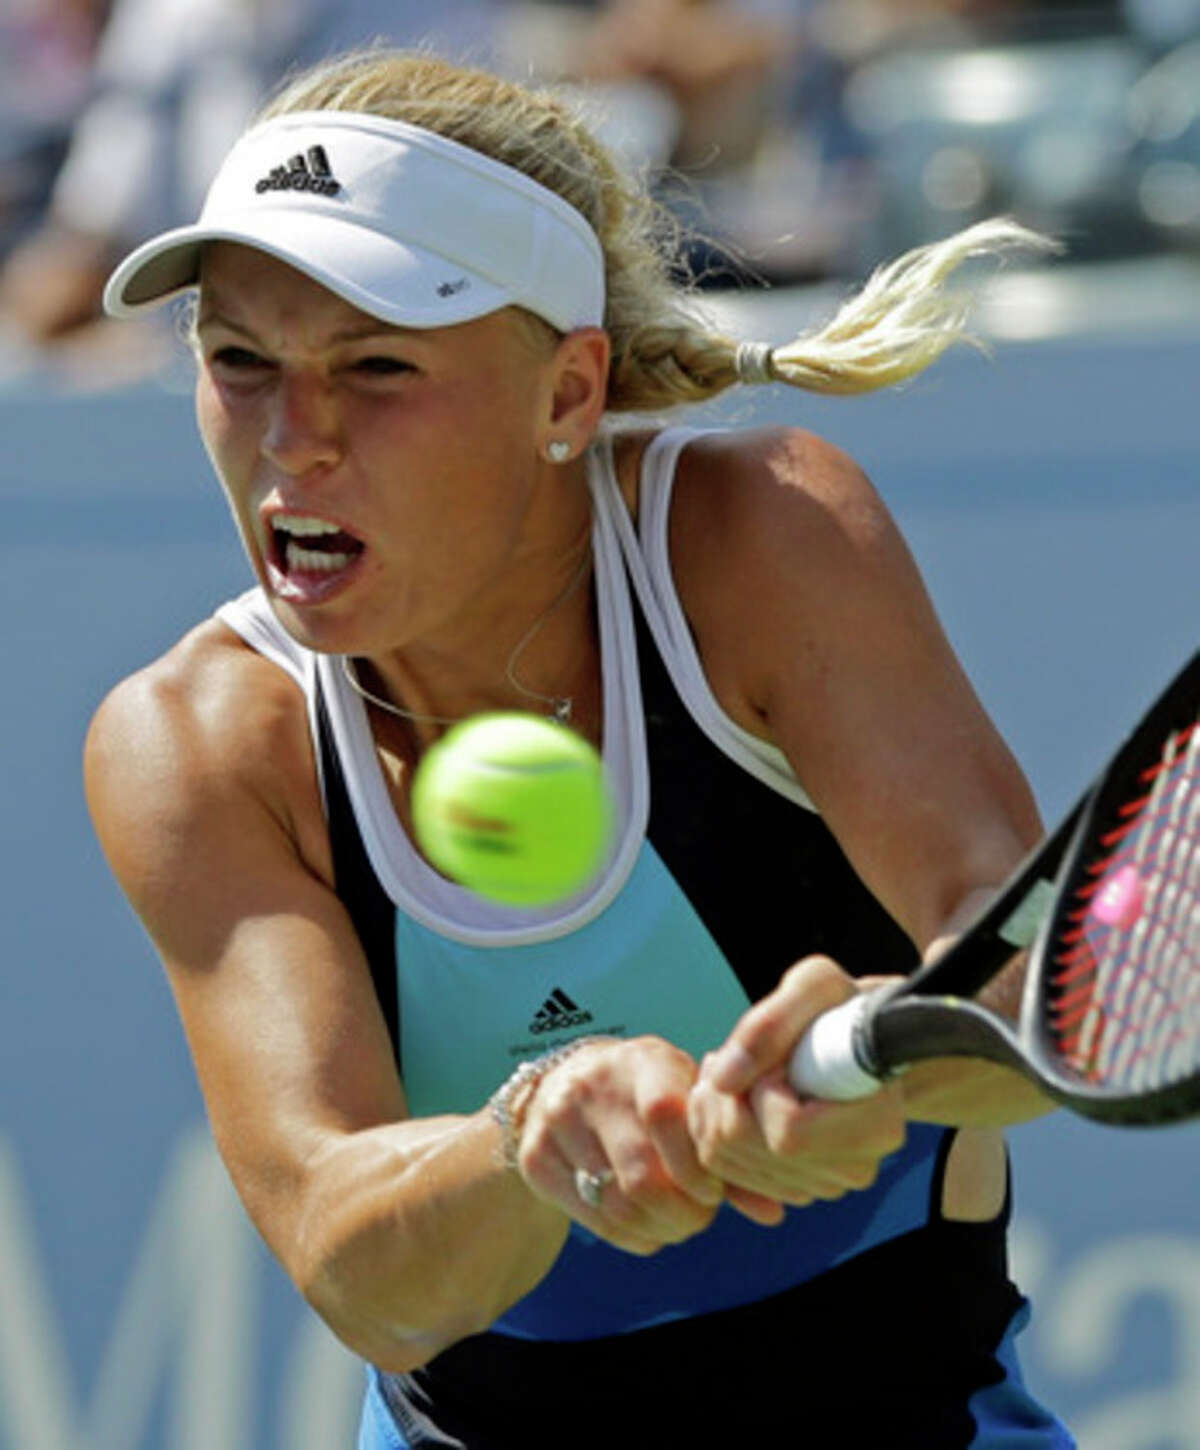 Caroline Wozniacki, of Denmark, returns a shot to Ying-Ying Duan, of China, during the first round of the 2013 U.S. Open tennis tournament Tuesday, Aug. 27, 2013, in New York. (AP Photo/Mike Groll)